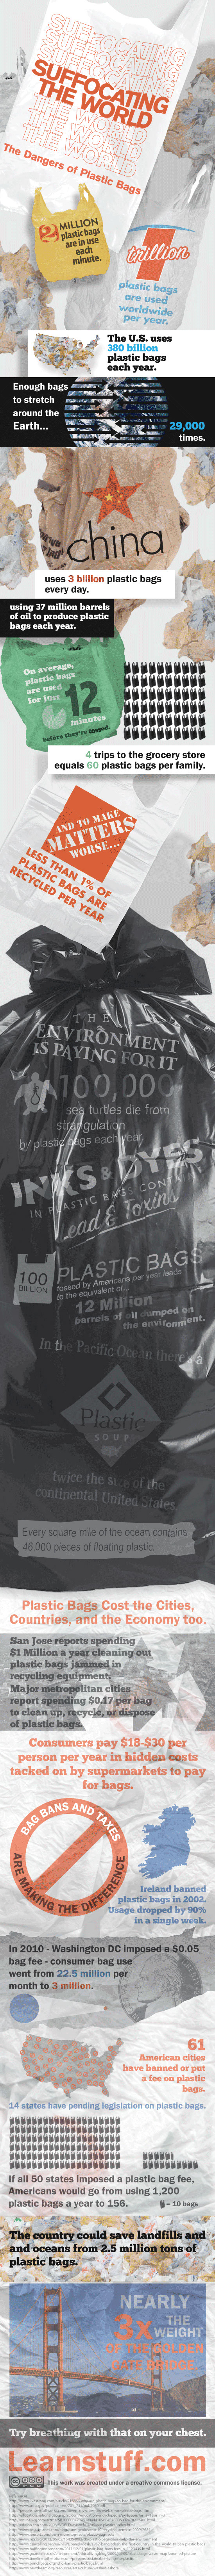 Plastic Bags Kill-Infographic